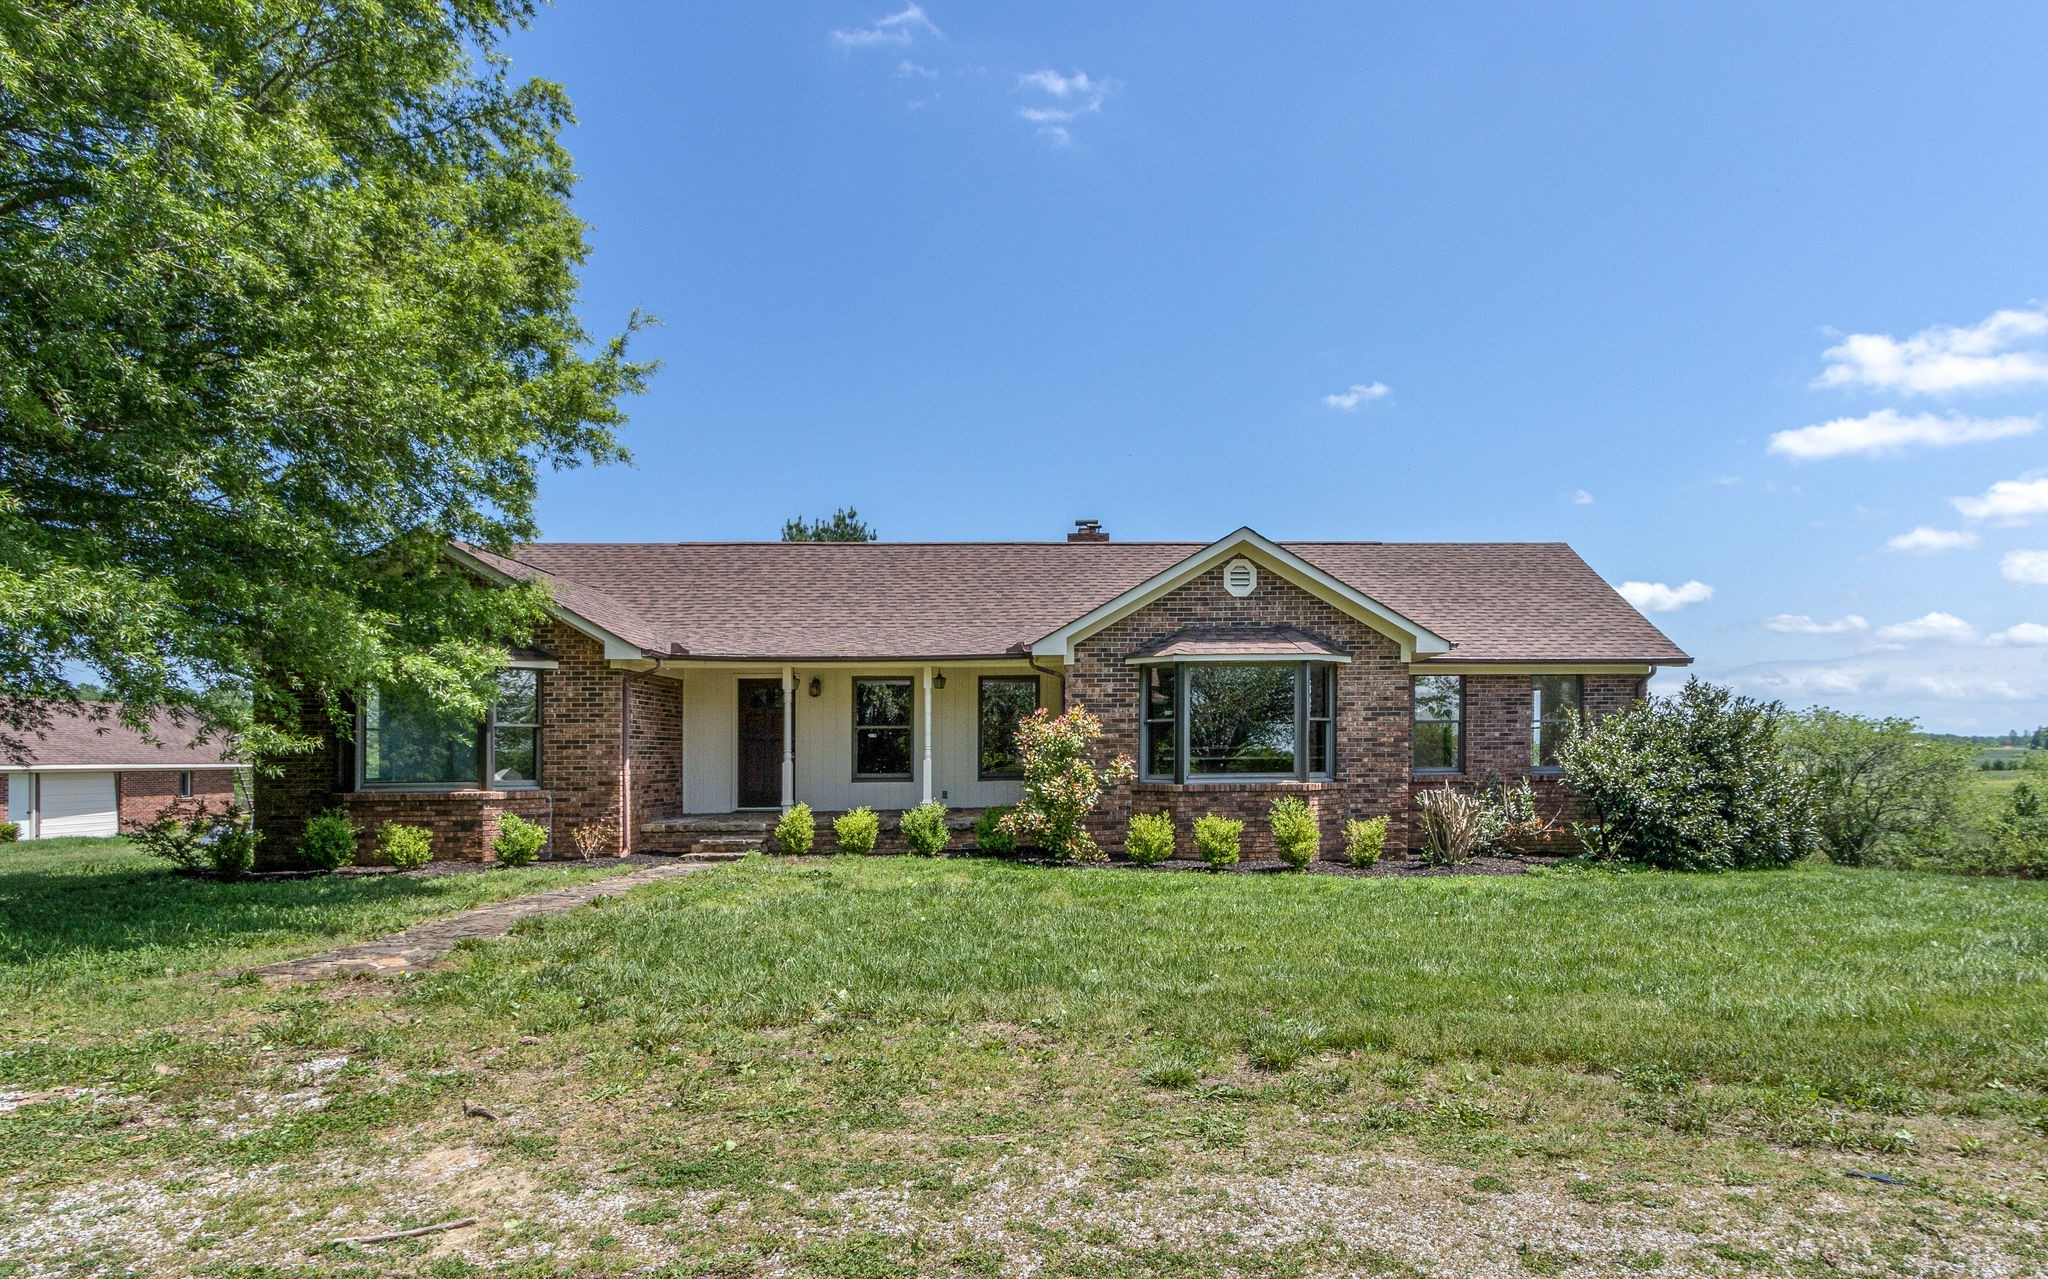 7424 Maple Springs Rd, Manchester, Tennessee